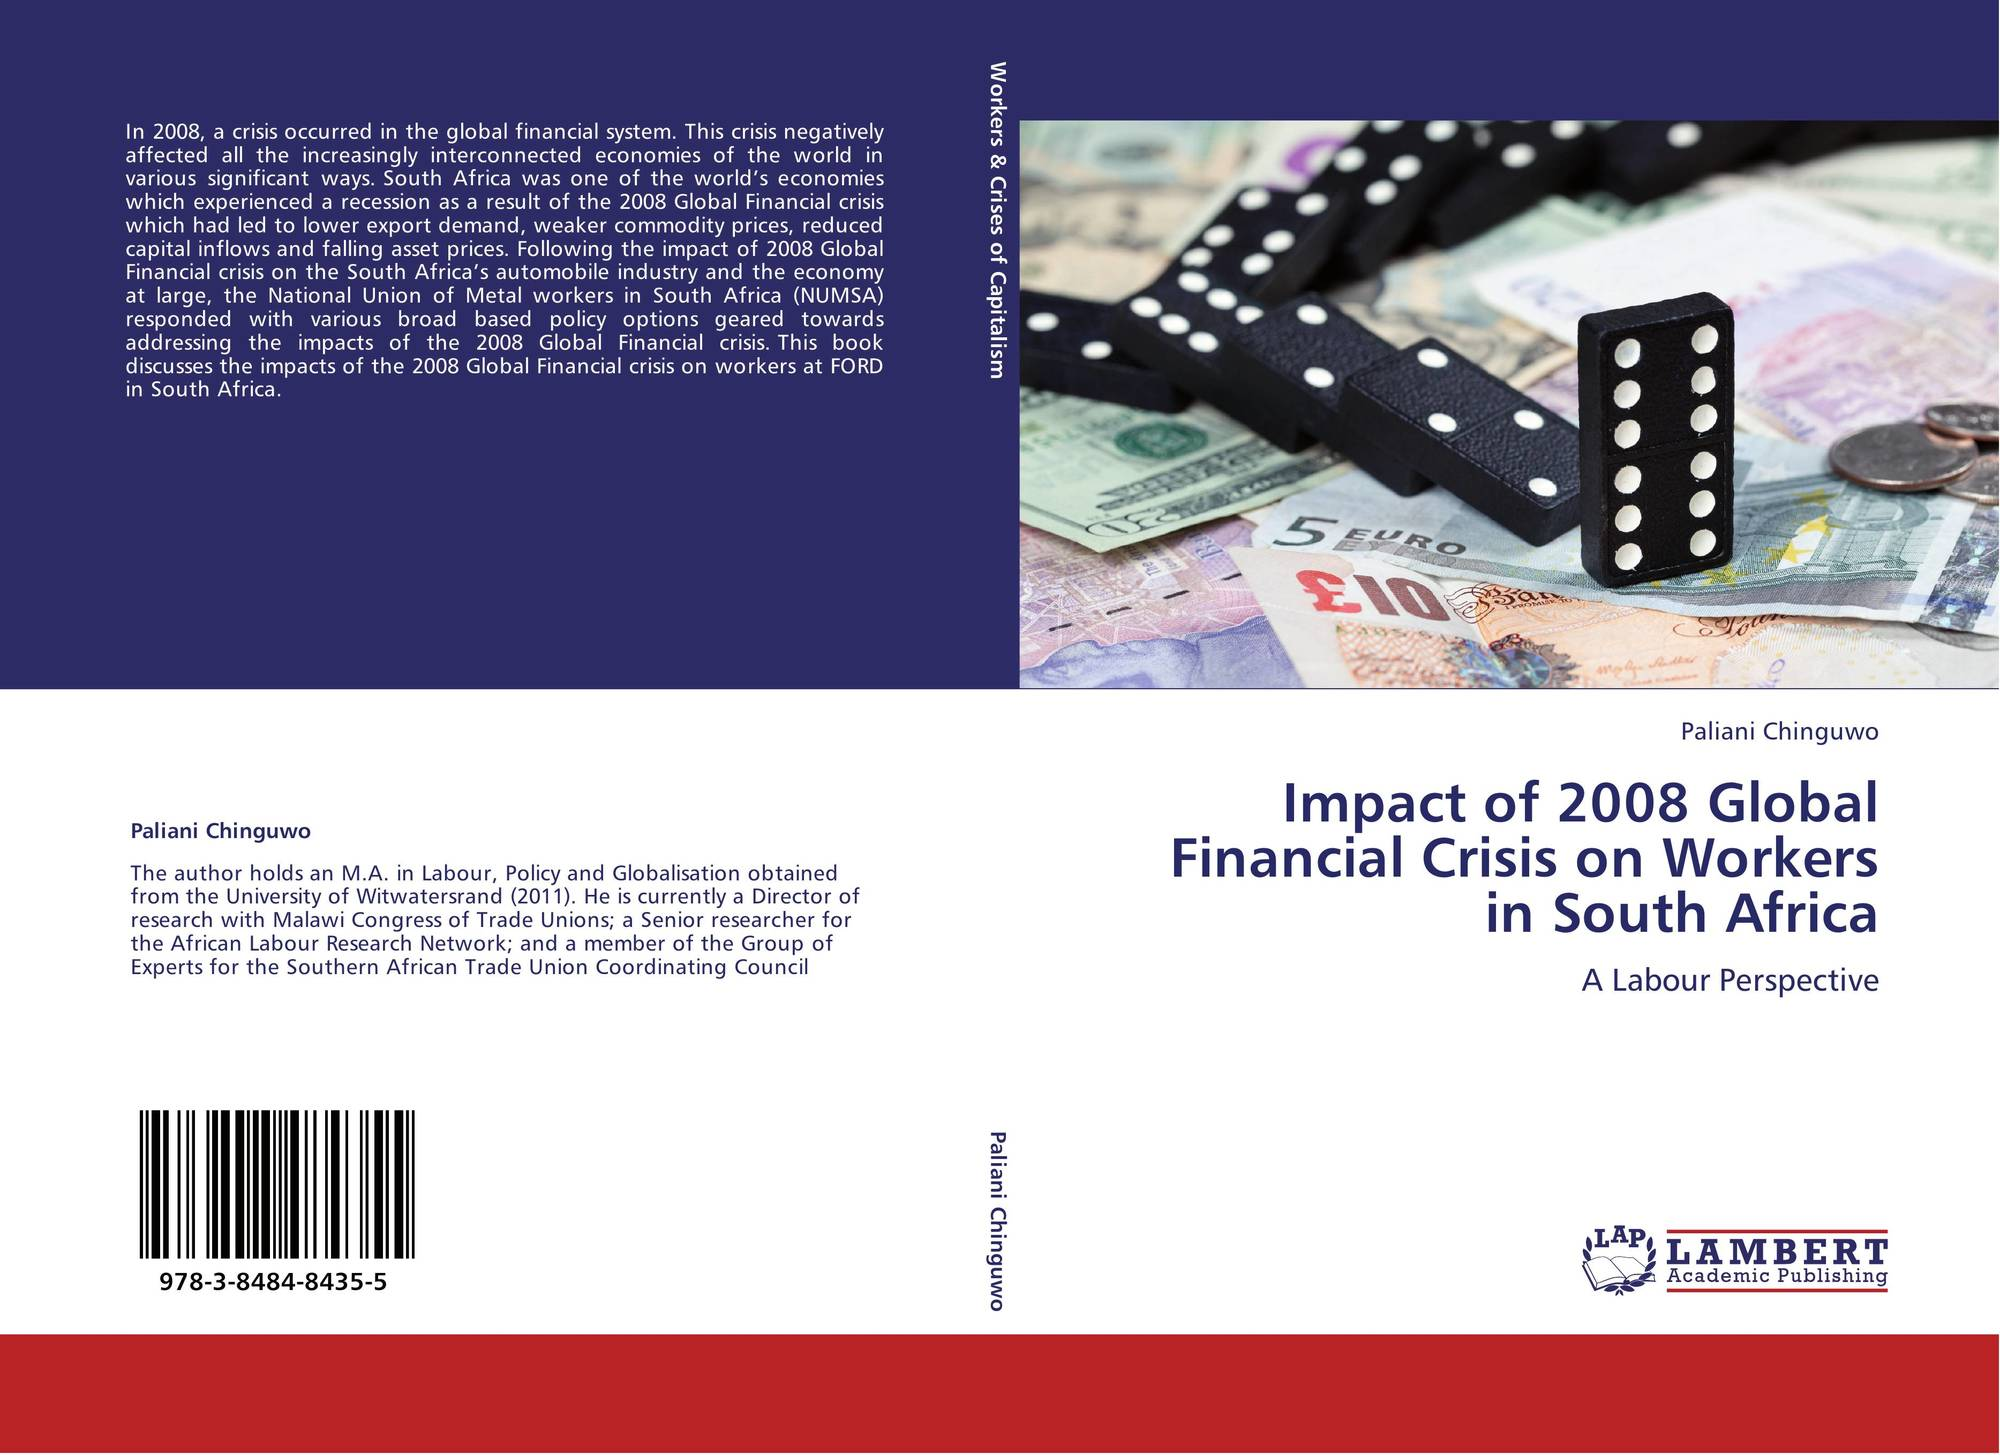 impact of credit crisis The credit crisis has illustrated that financial services are one integrated market, one that is in need of integrated risk management and supervision separate regulation of banking, insurance, and other financial services providers invariably creates opportunities for regulatory arbitrage, which was one of the roots of the crisis.